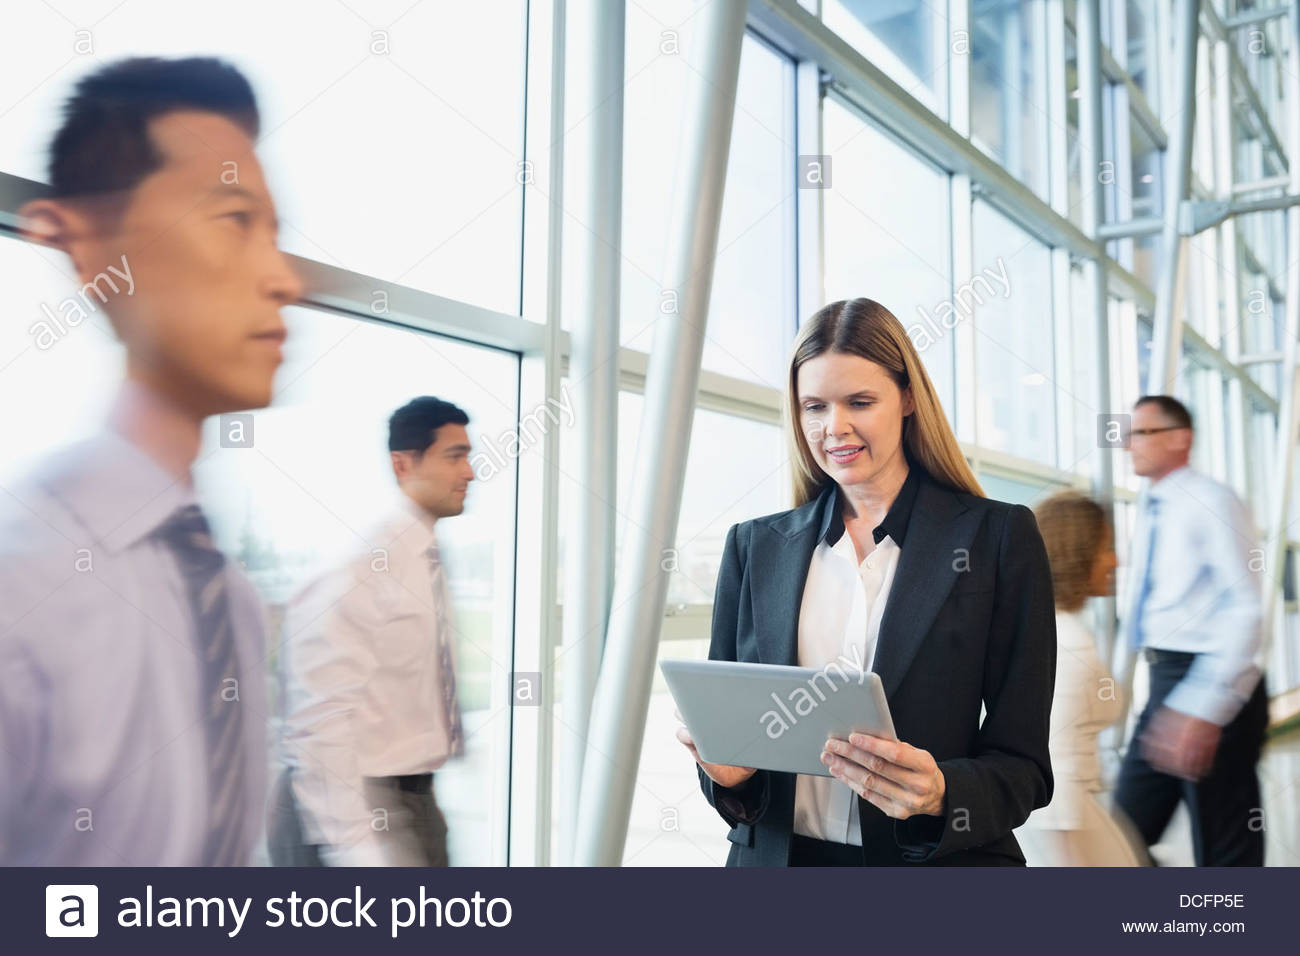 Businesswoman using digital tablet in office building - Stock Image